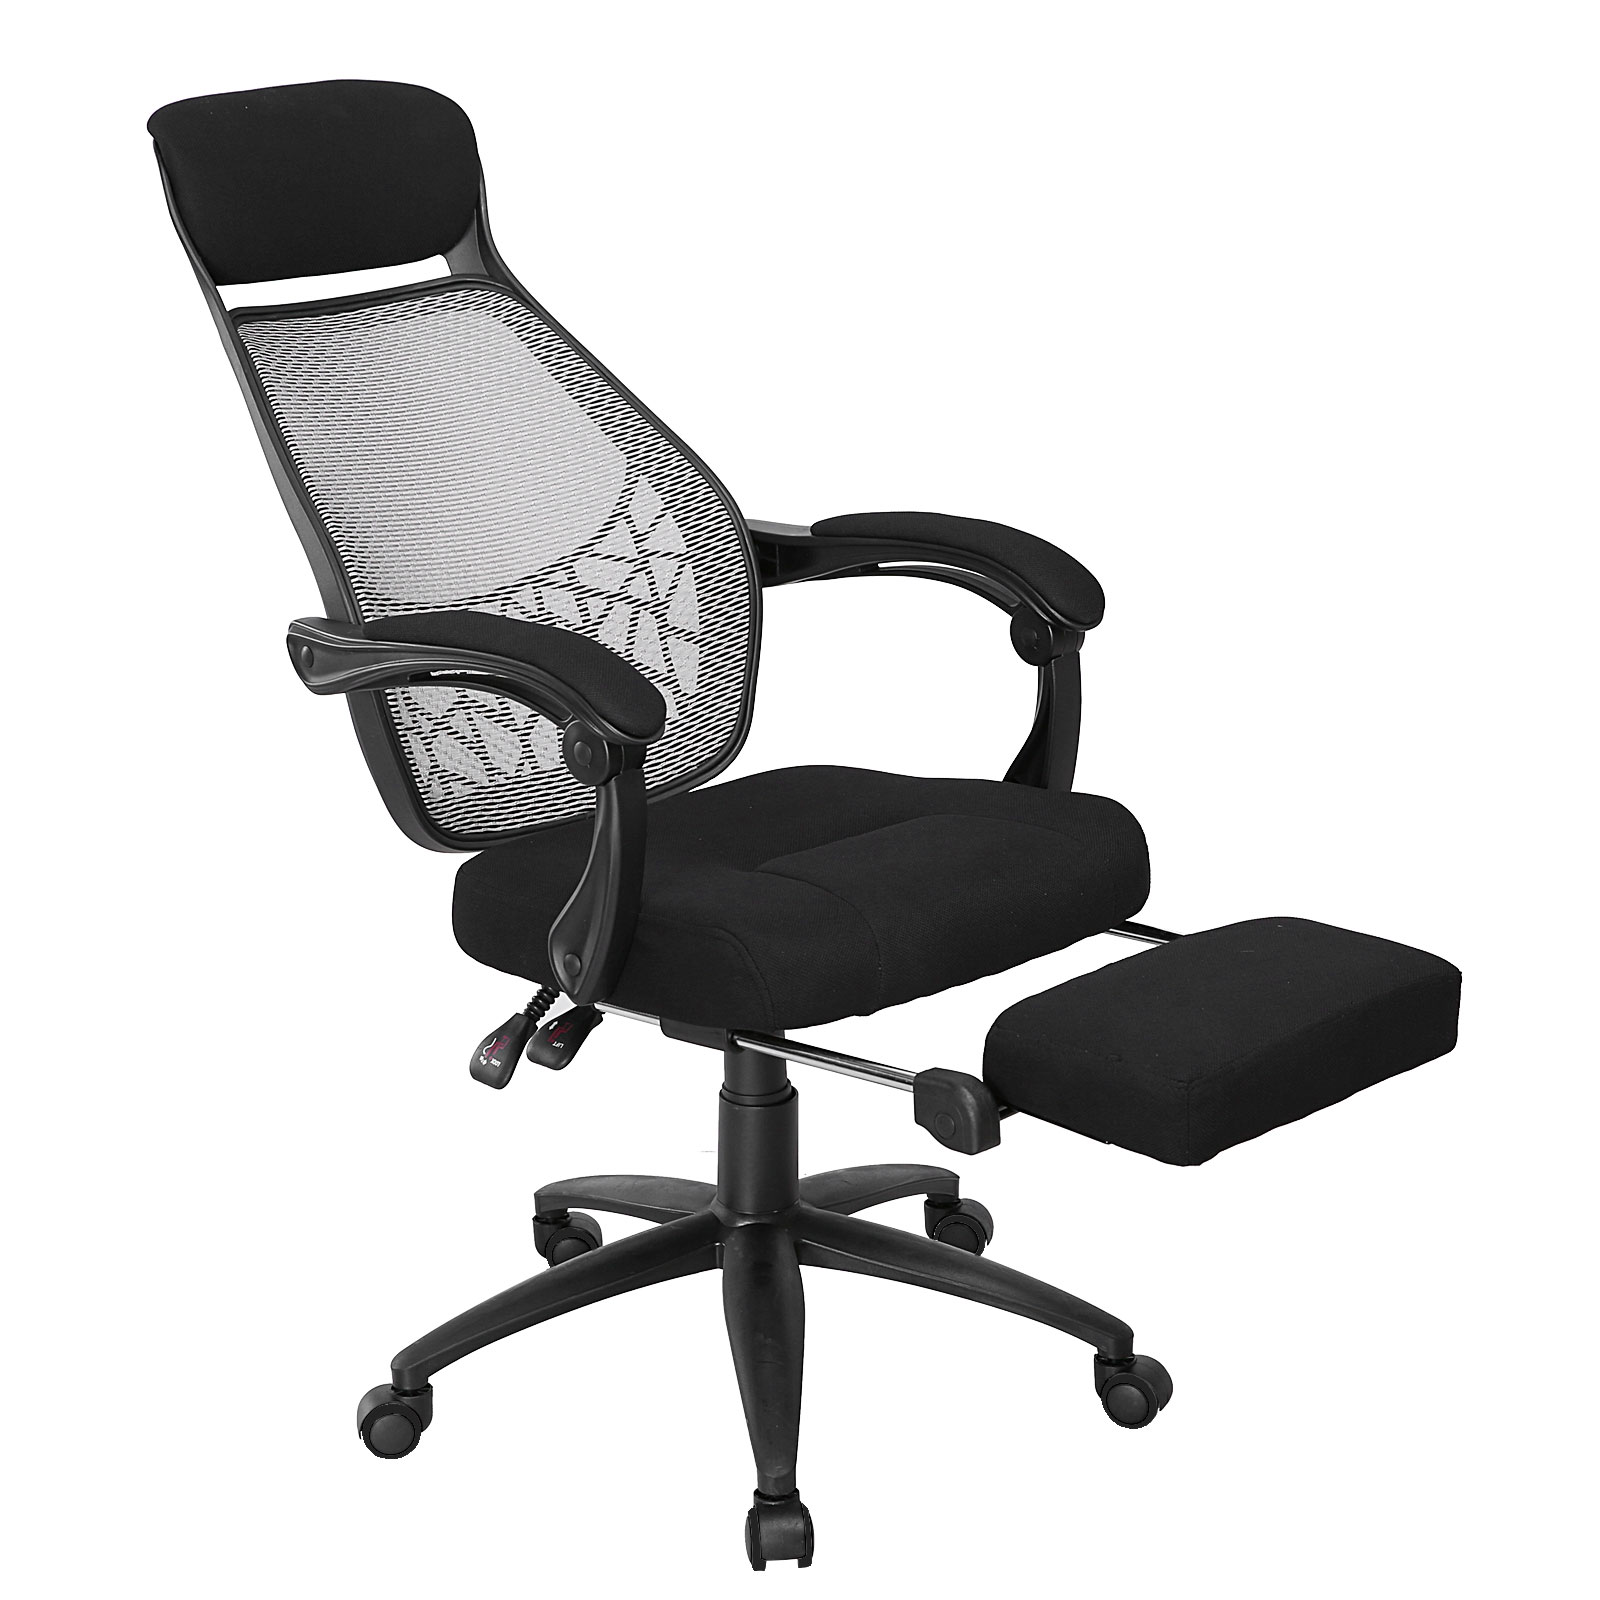 Office Computer Chair Executive High Back Mesh Seat Fabric Recline Furniture